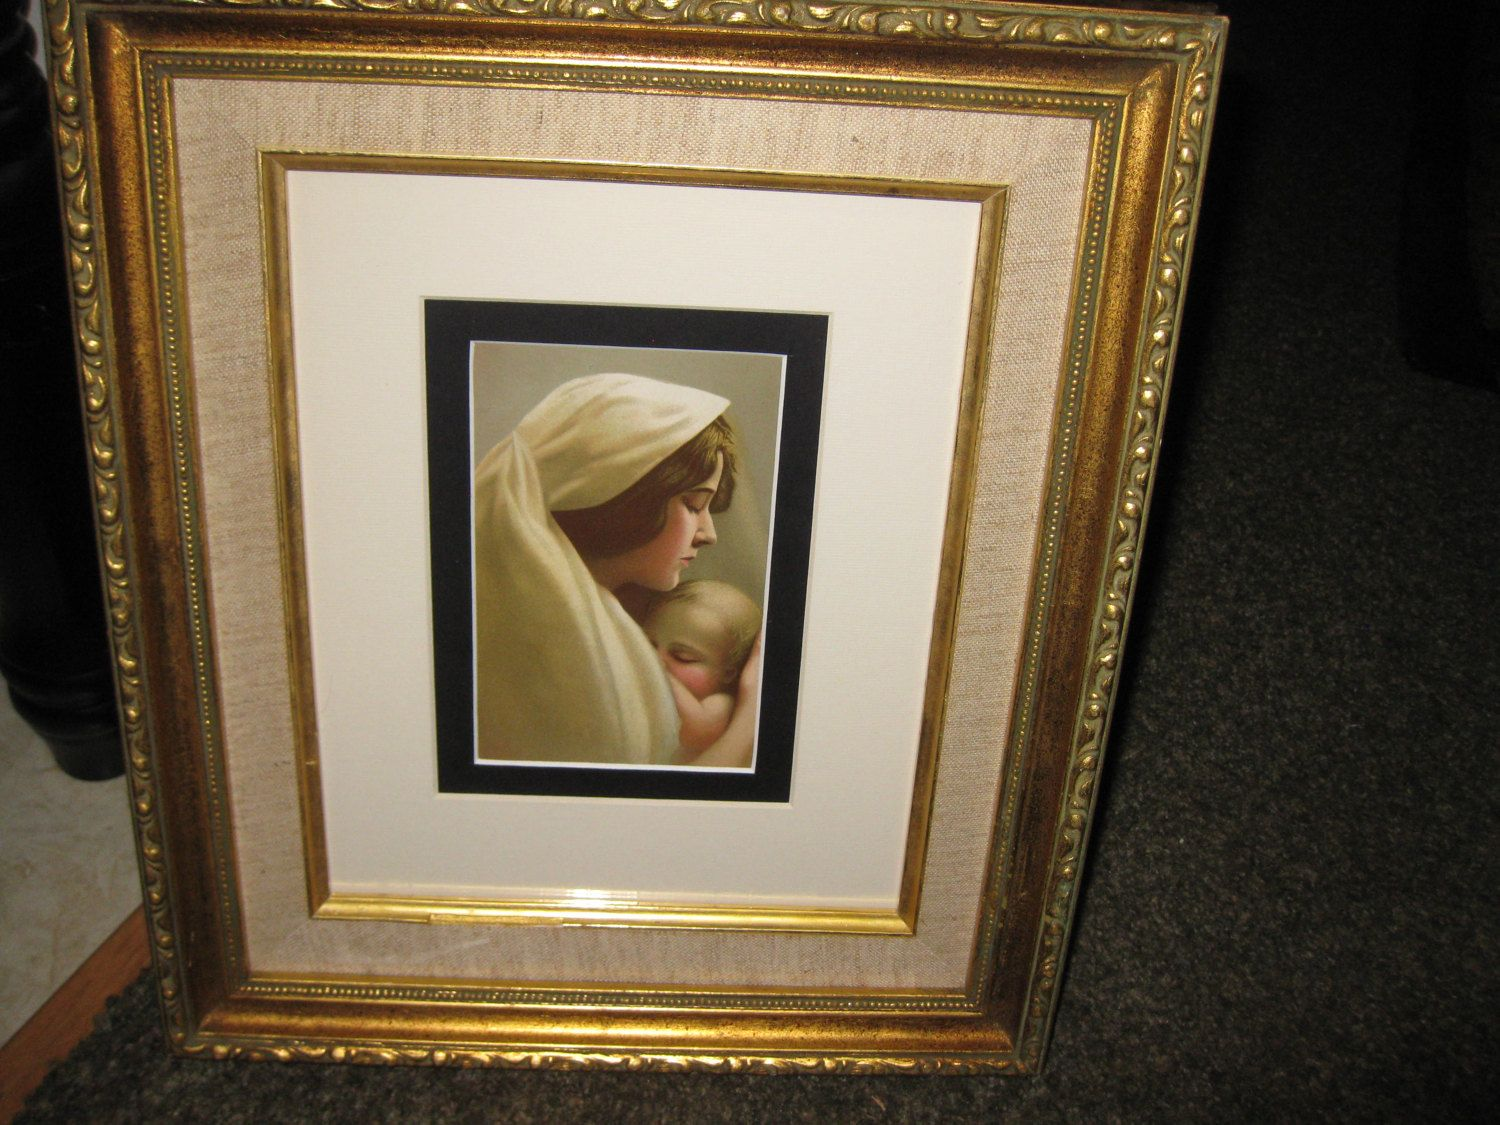 Mother And Child 1911 Print In Wood Frame 12 X 14 Double Matted In